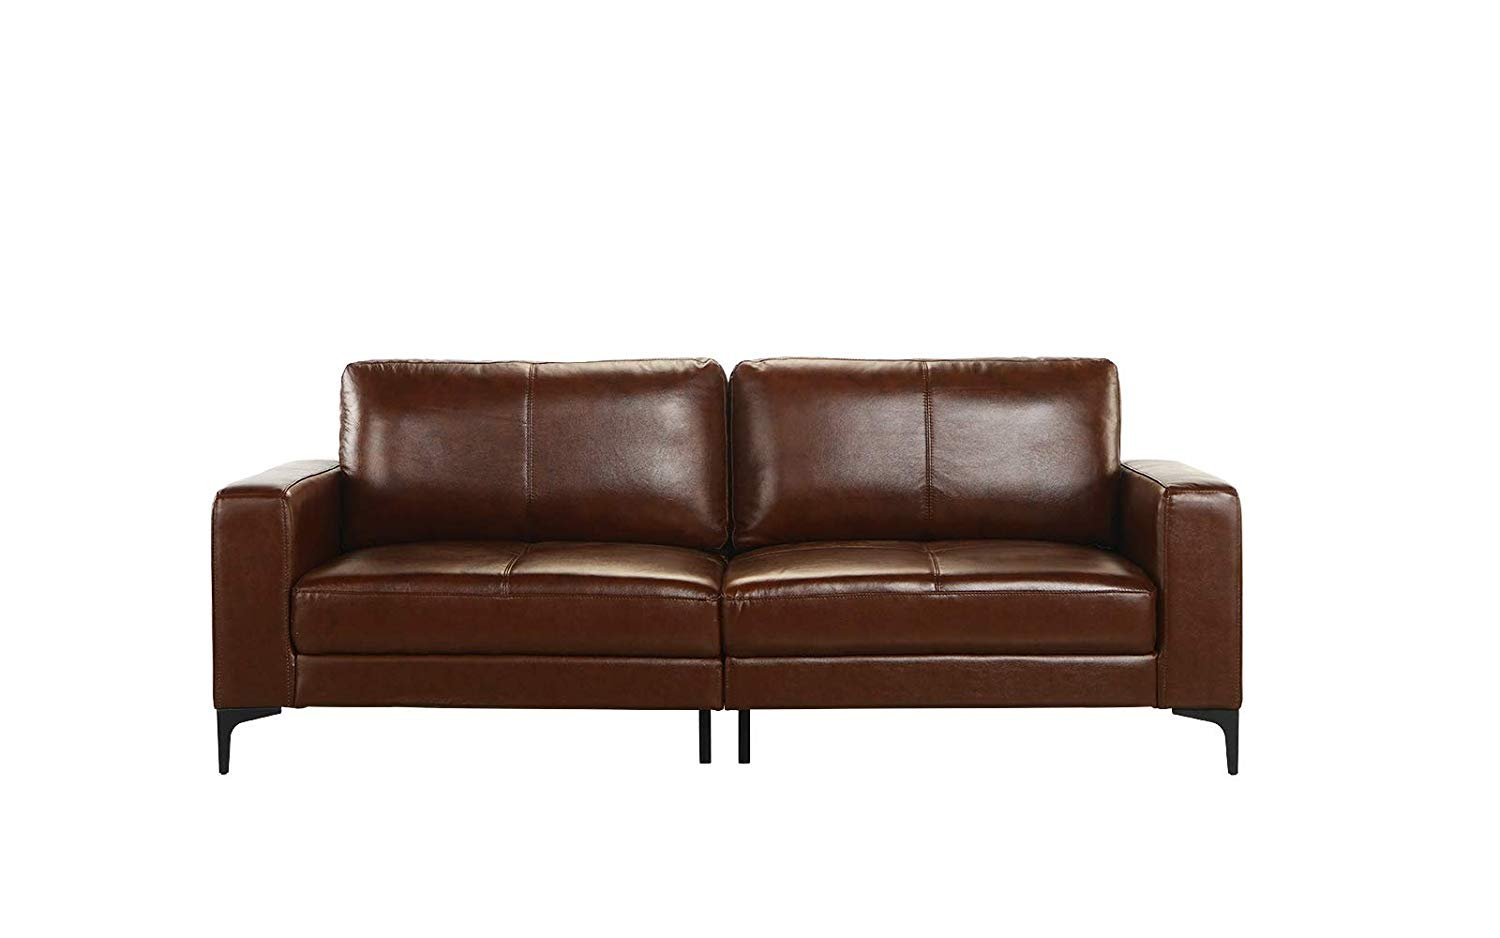 Details About Mid Century Modern Dark Brown Upholstered Leather Match Sofa 80 3 W Inch Couch